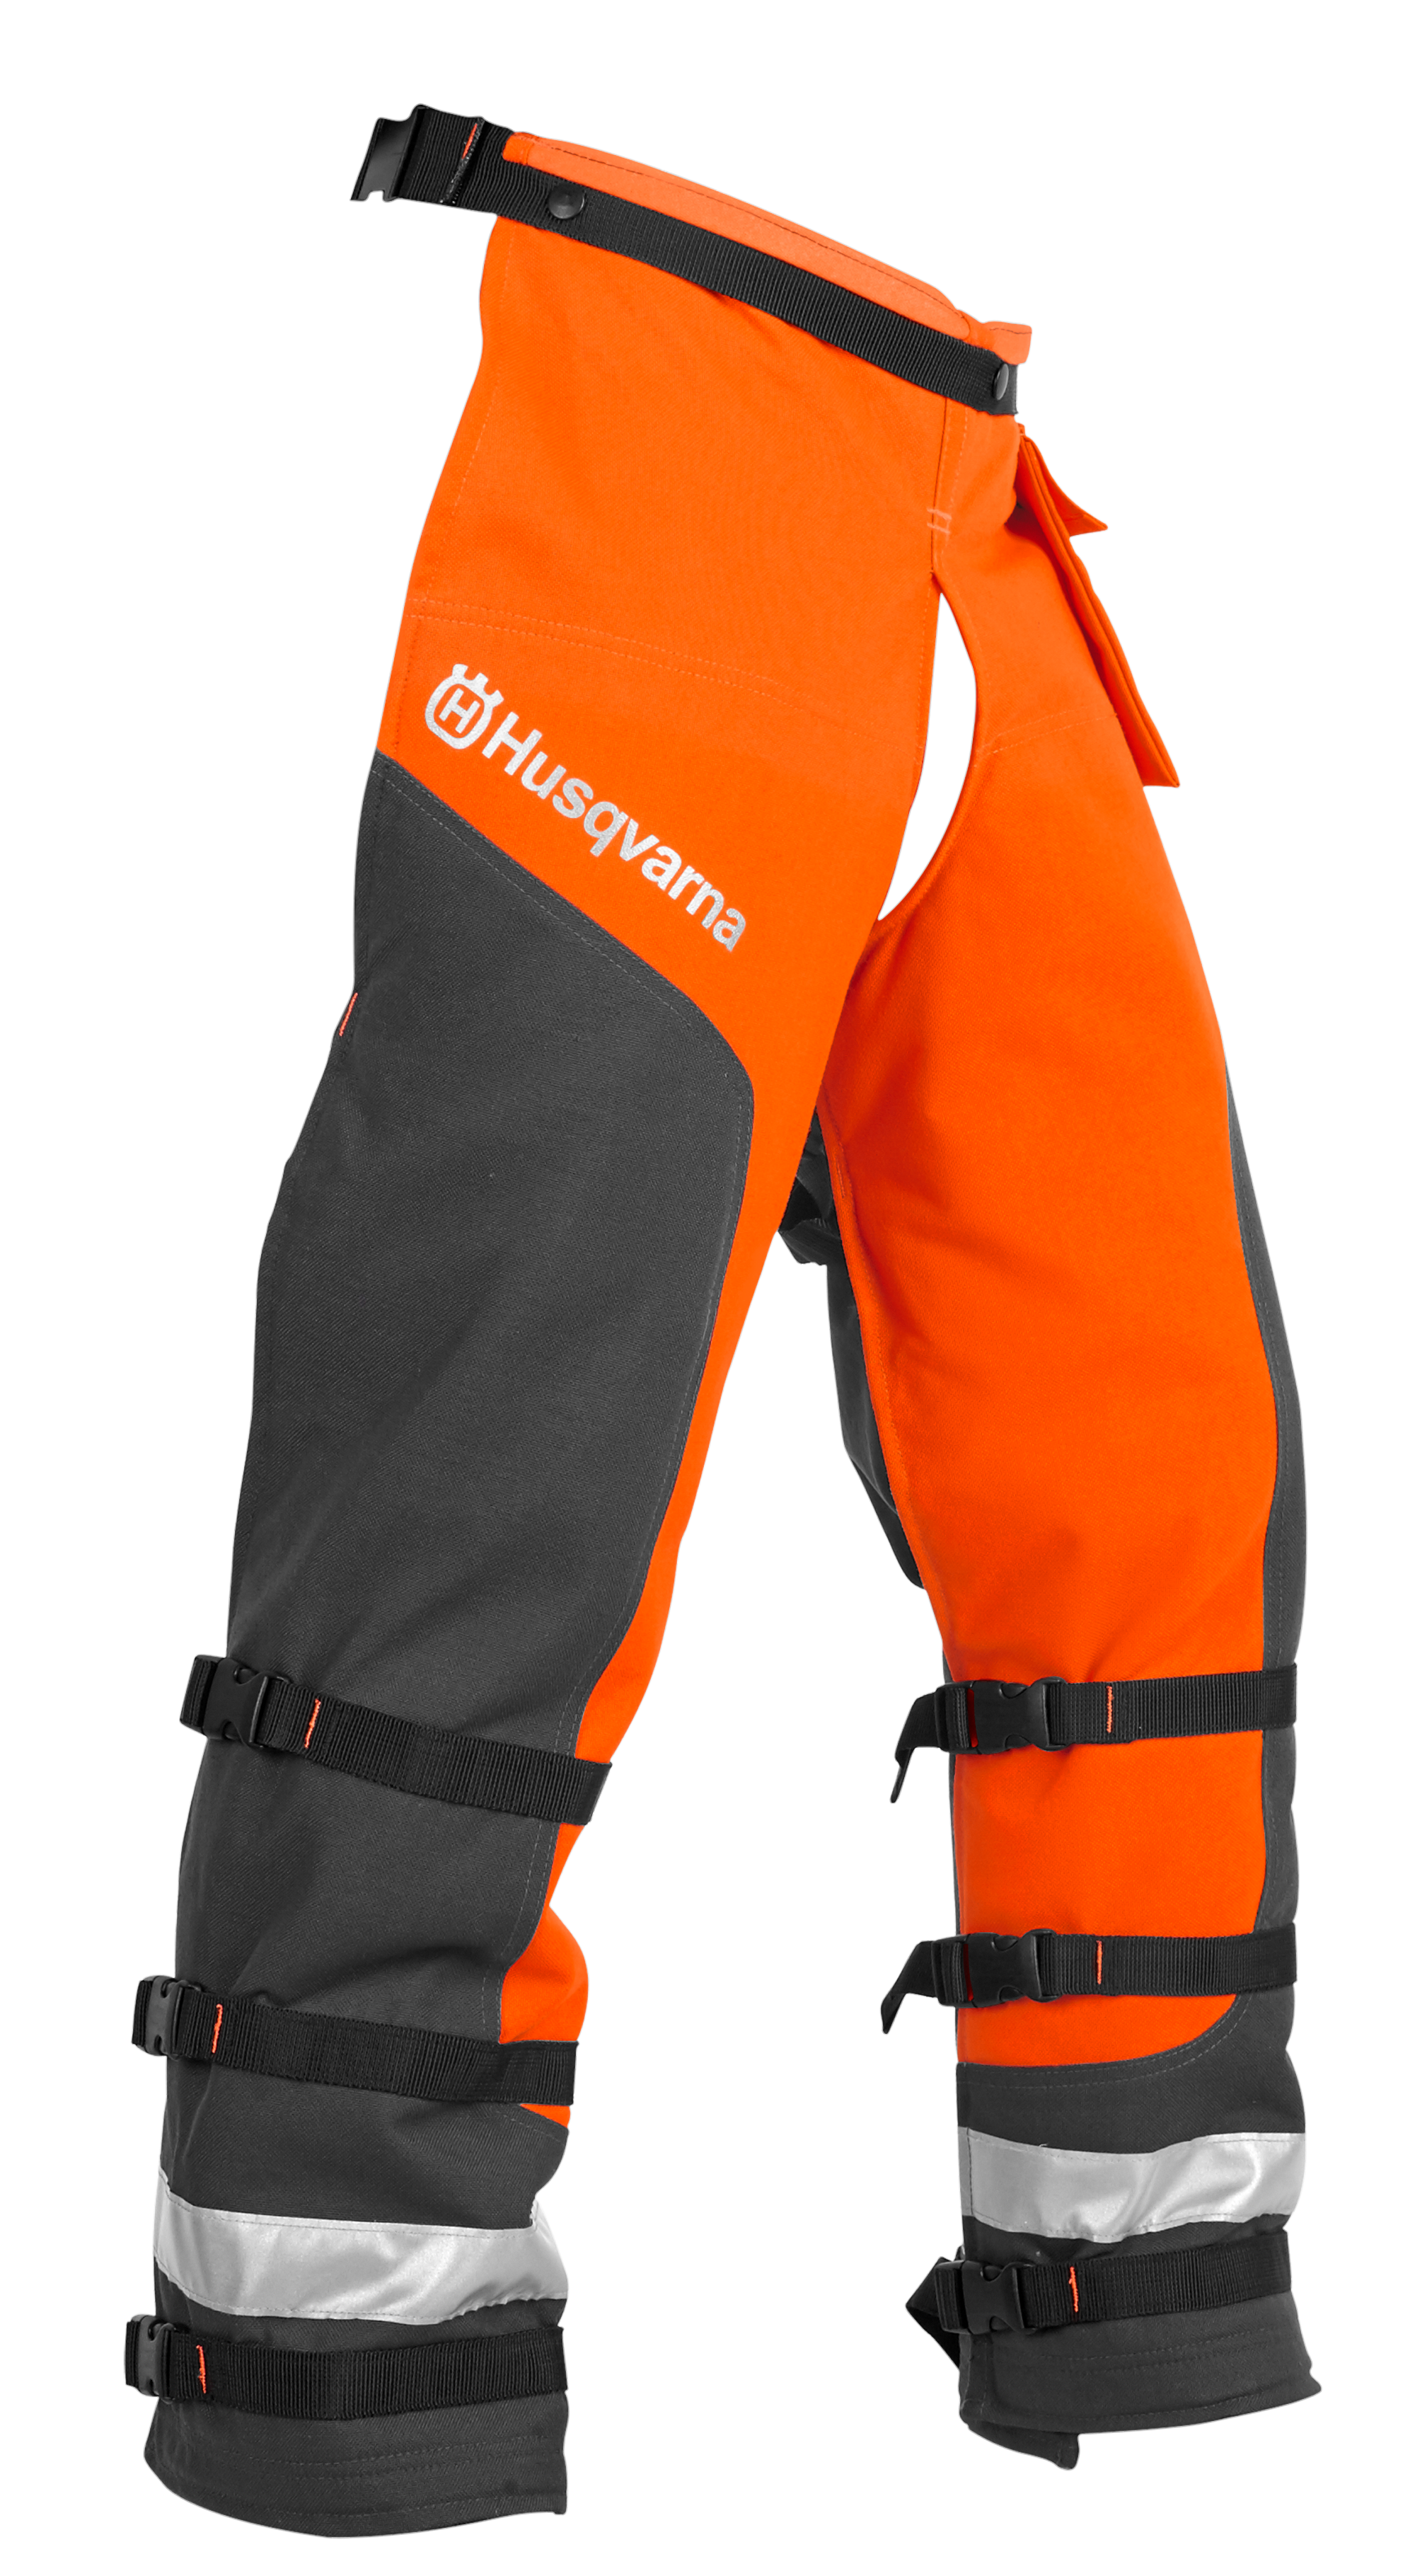 Image for Technical Chainsaw Chaps                                                                                                         from HusqvarnaB2C